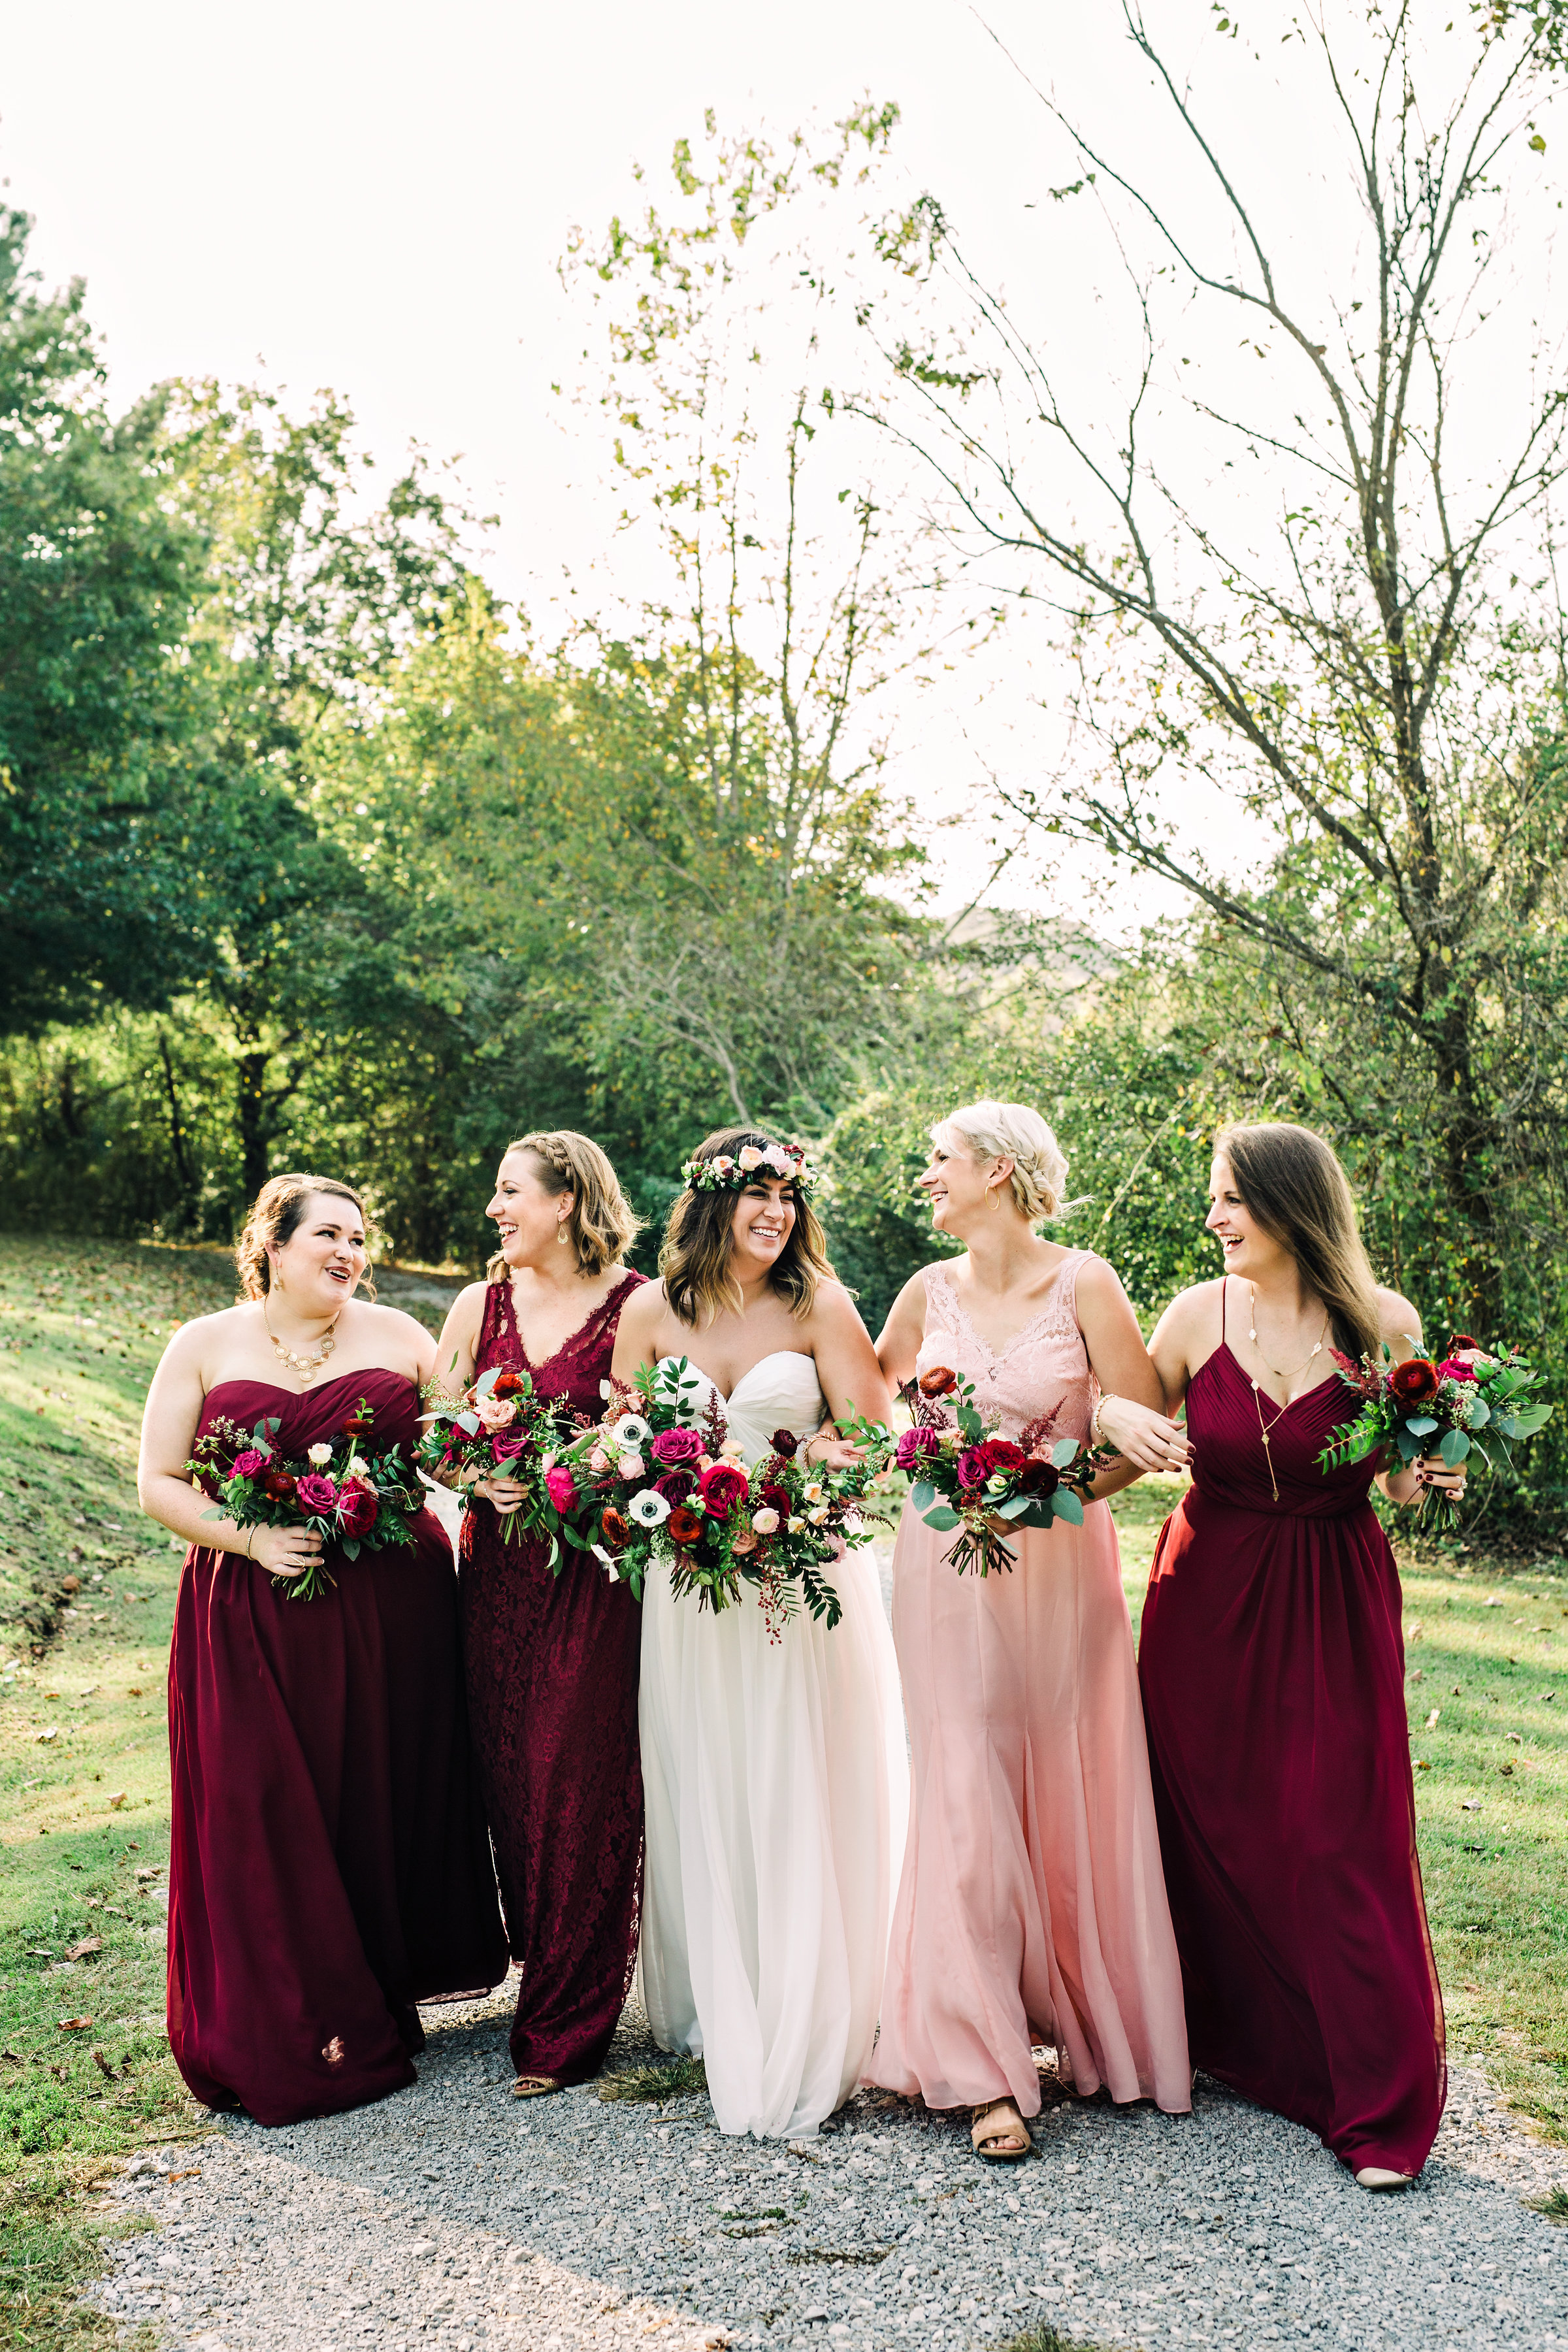 Bridesmaids in burgundy and blush // Meadow Hill Farm Wedding Flowers